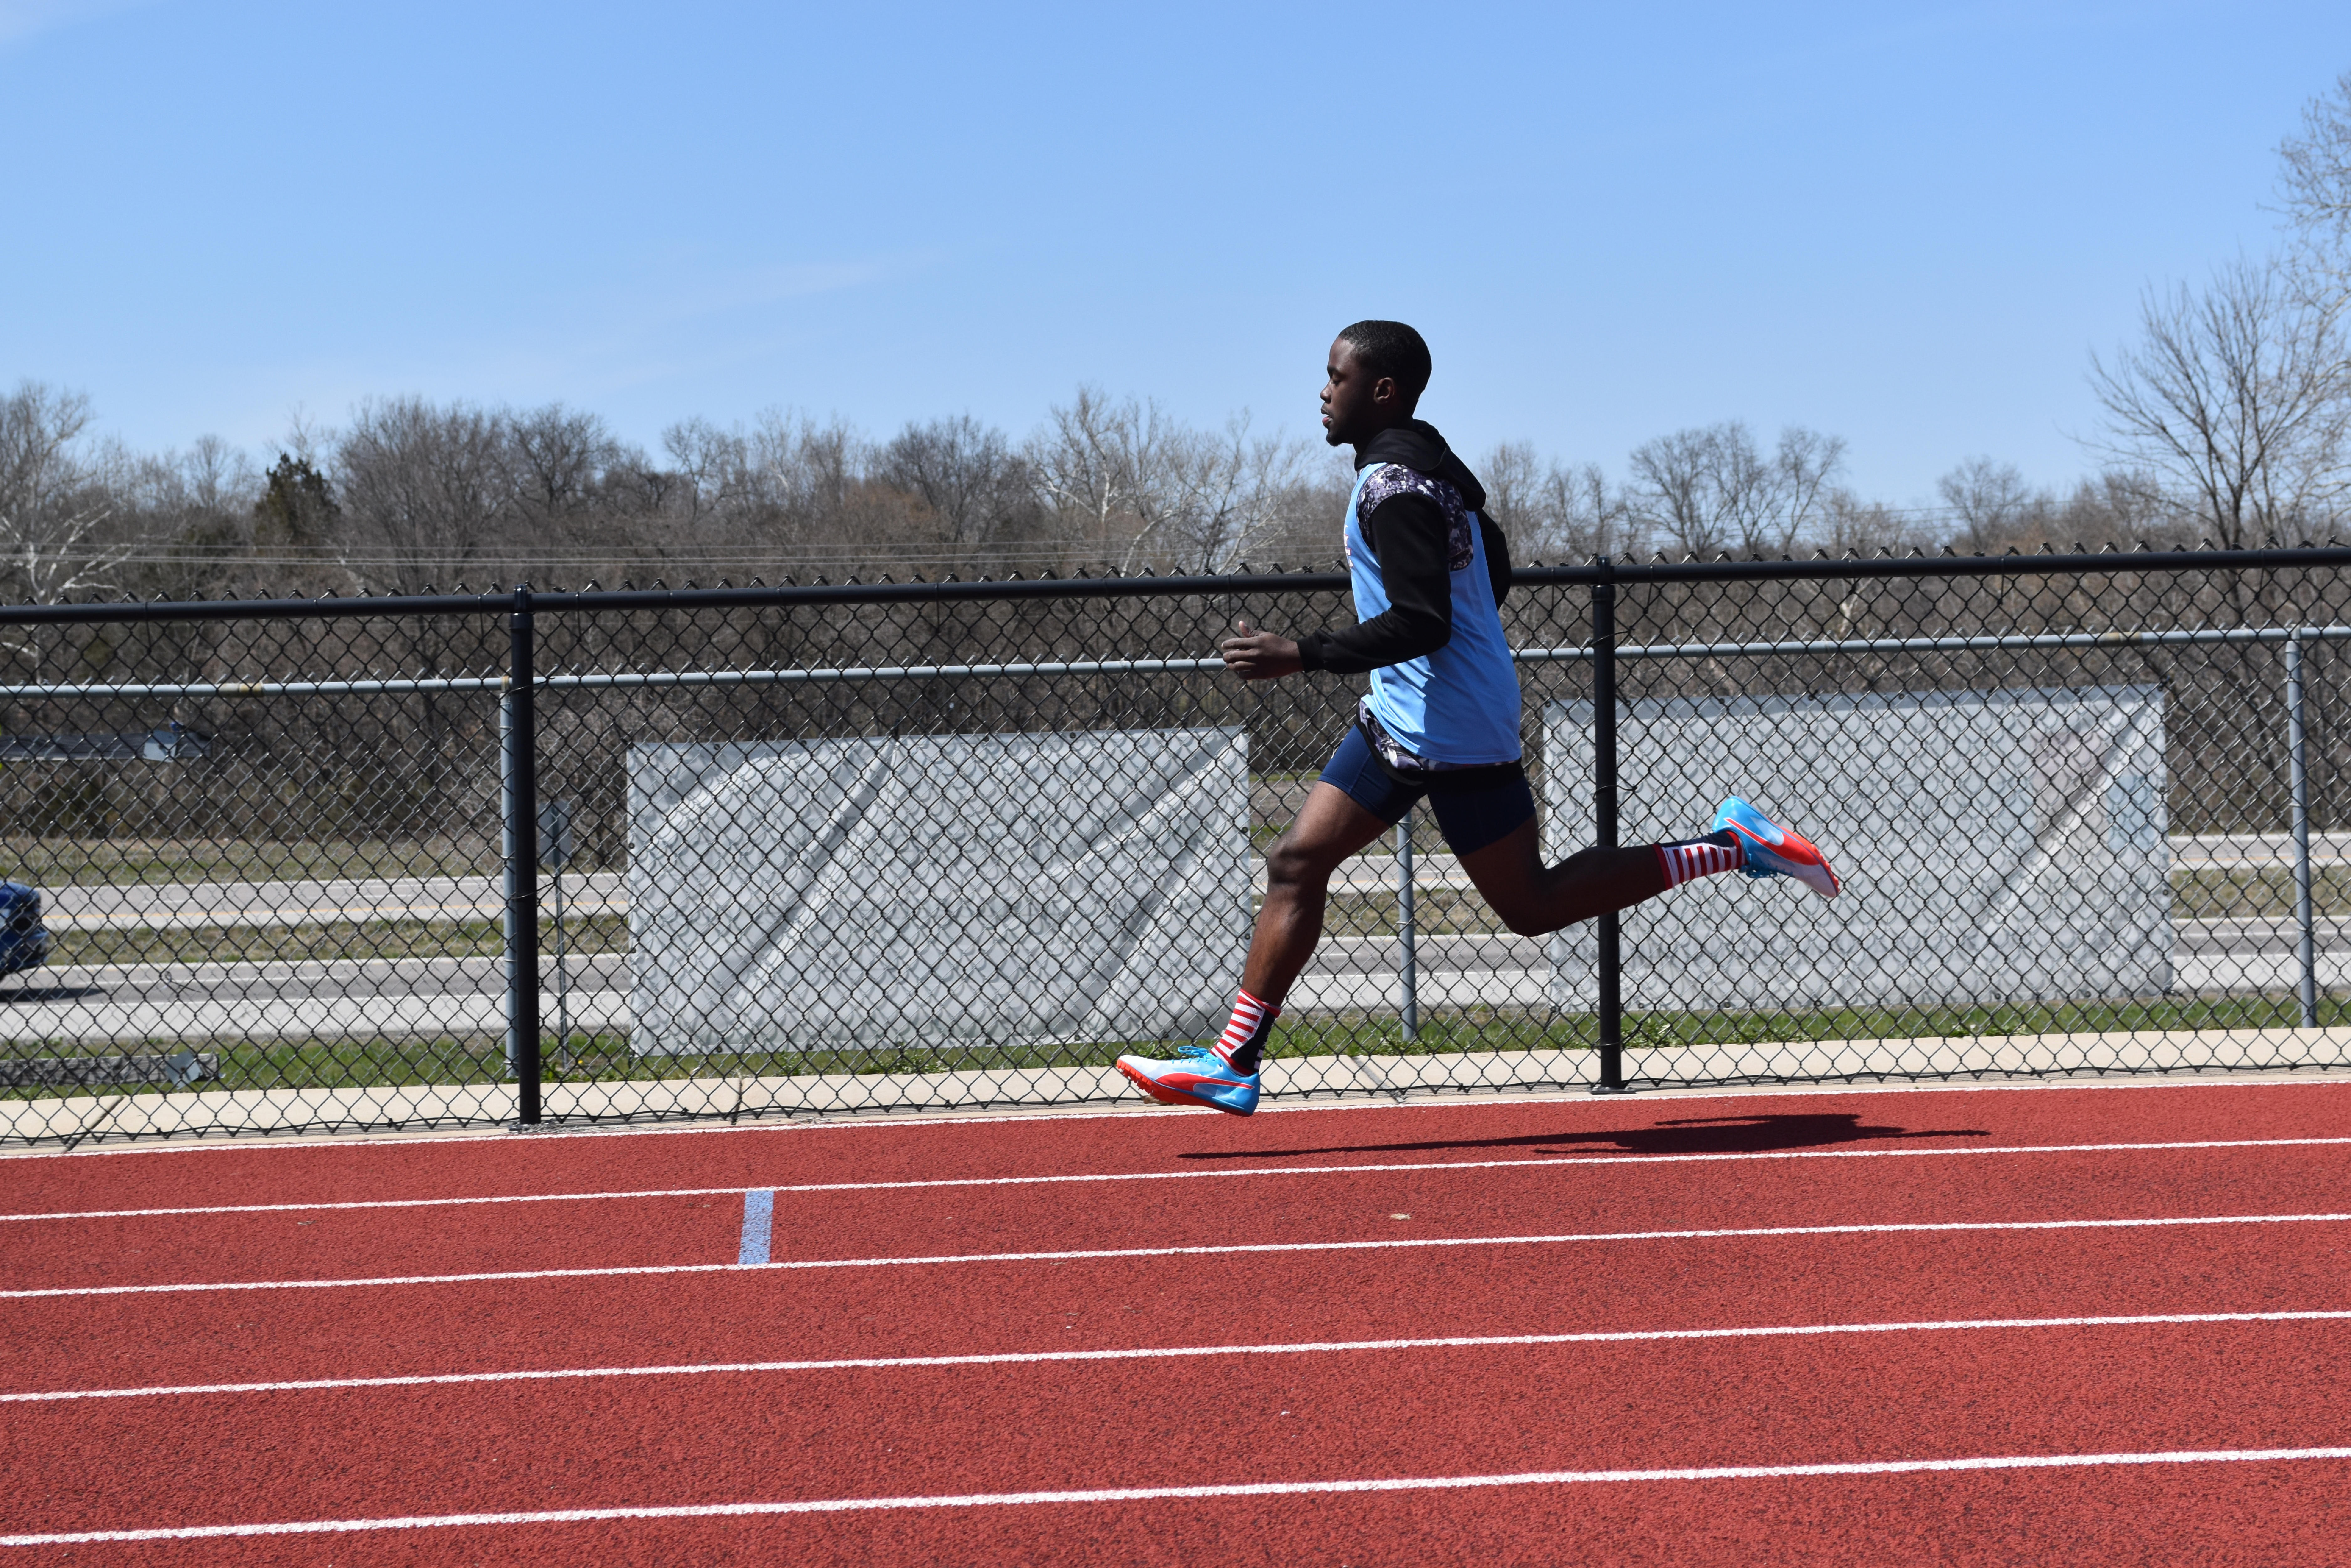 """Striding out on the back stretch, senior Reggie Burns races the 400 meter dash. Burns finished fourth in the event with a time of 53.85 seconds. """"I was feeling a bit under the weather so I couldn't perform at my best, but I was able to recover by the 4x400 meter relay,"""" Burns said."""